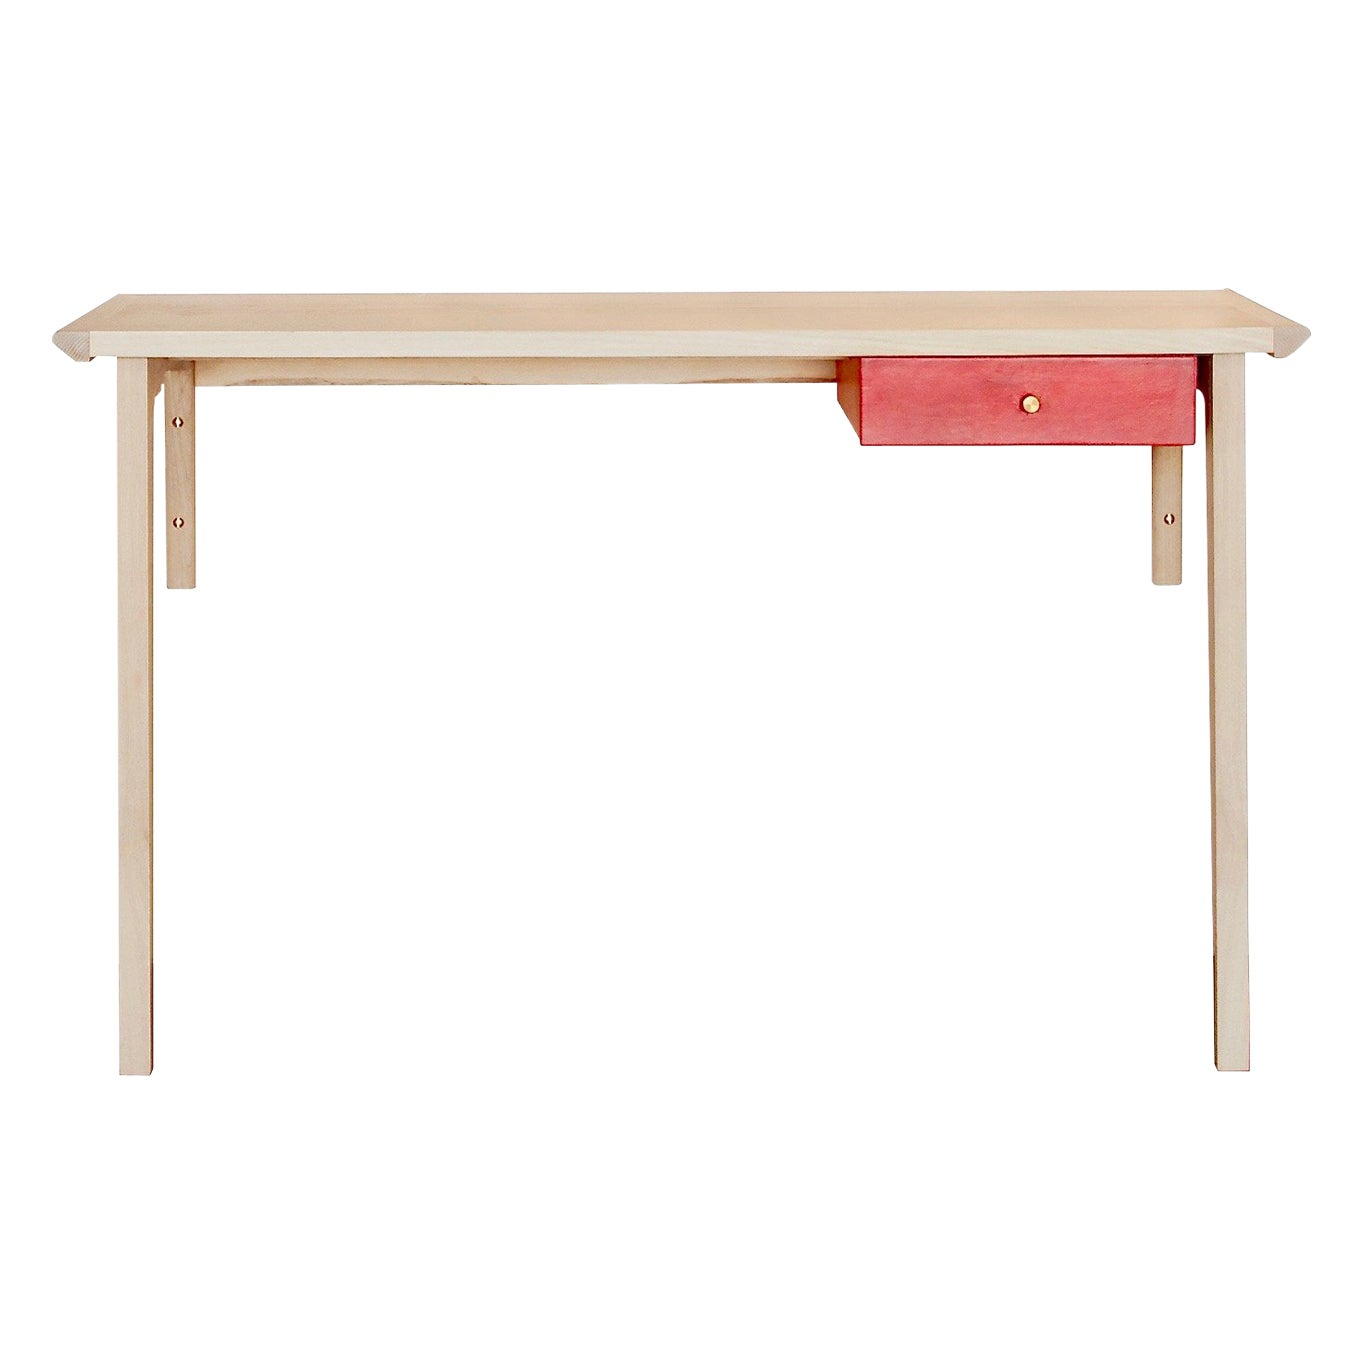 Whitewashed Ash Linderman Wood Wall-Mounted Desk with Leather Wrapped Drawer